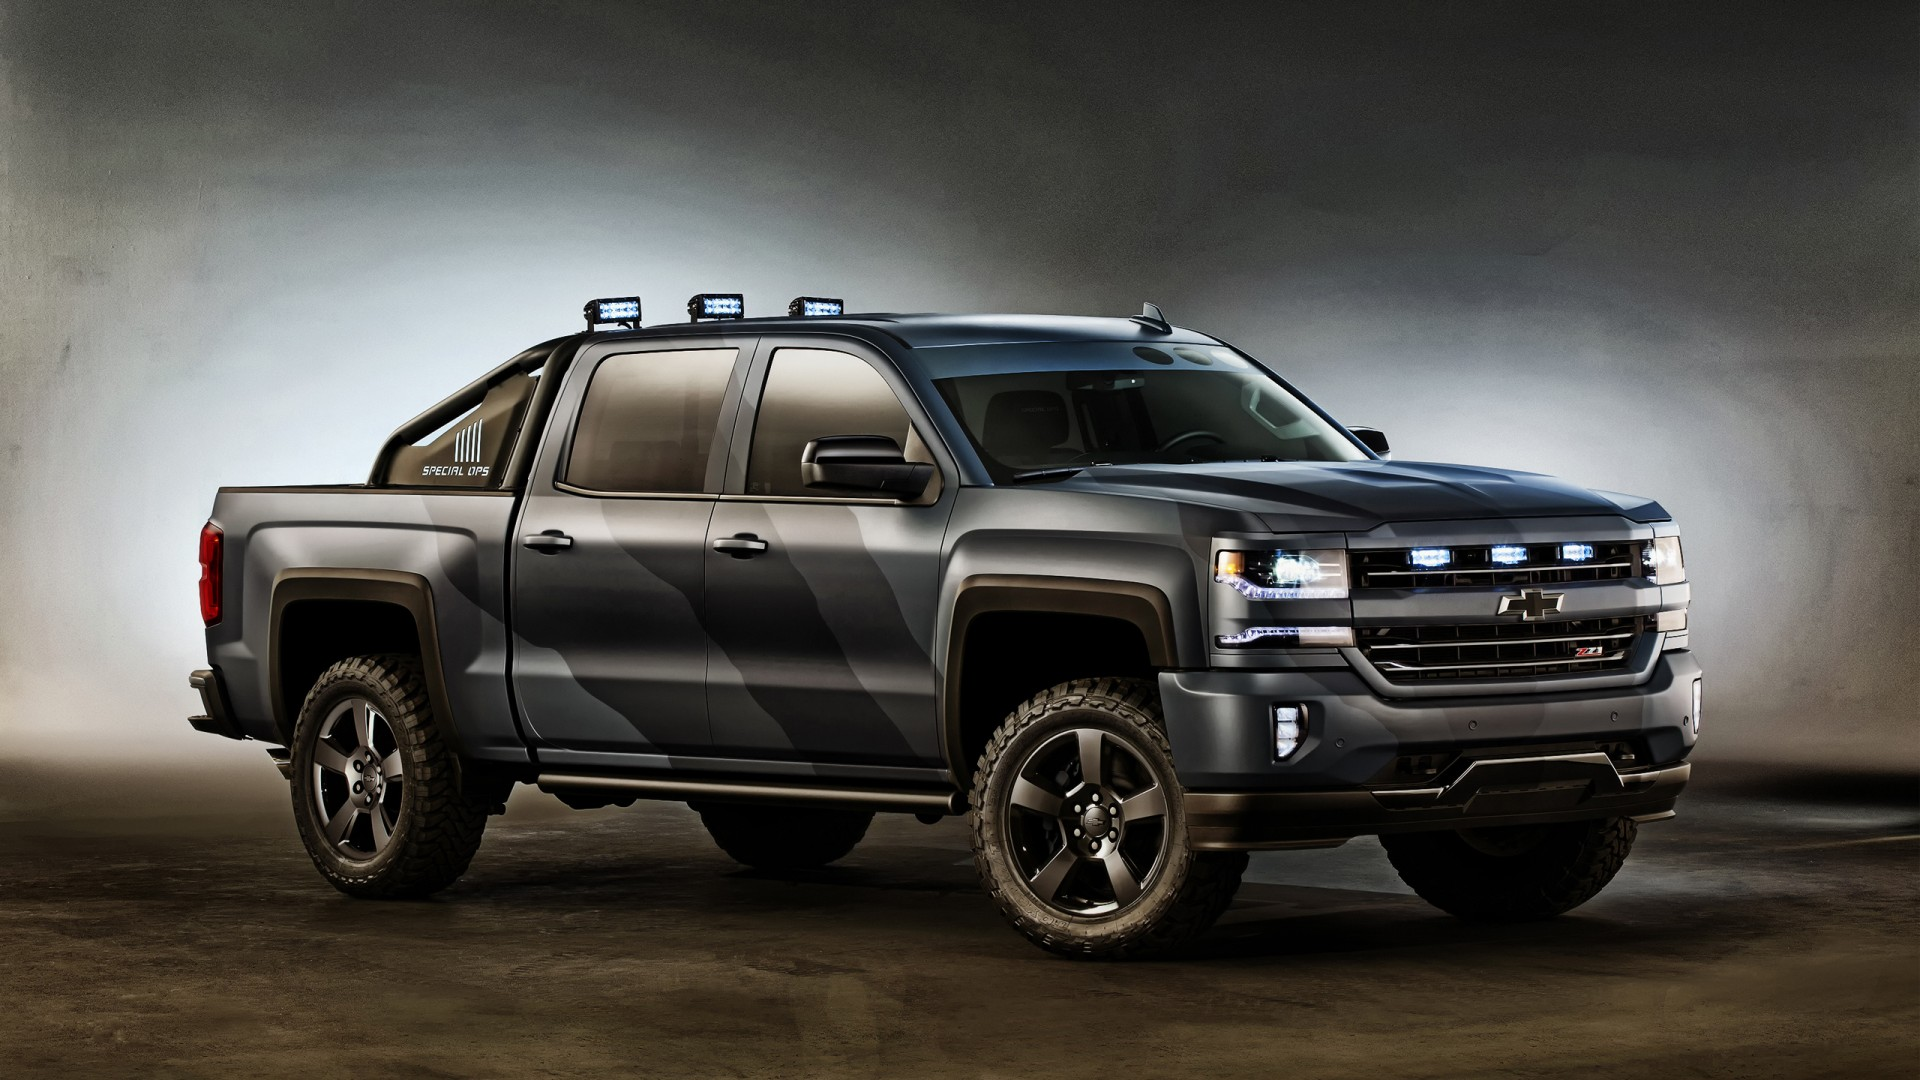 2015 Chevrolet Silverado Concept Wallpaper Hd Car